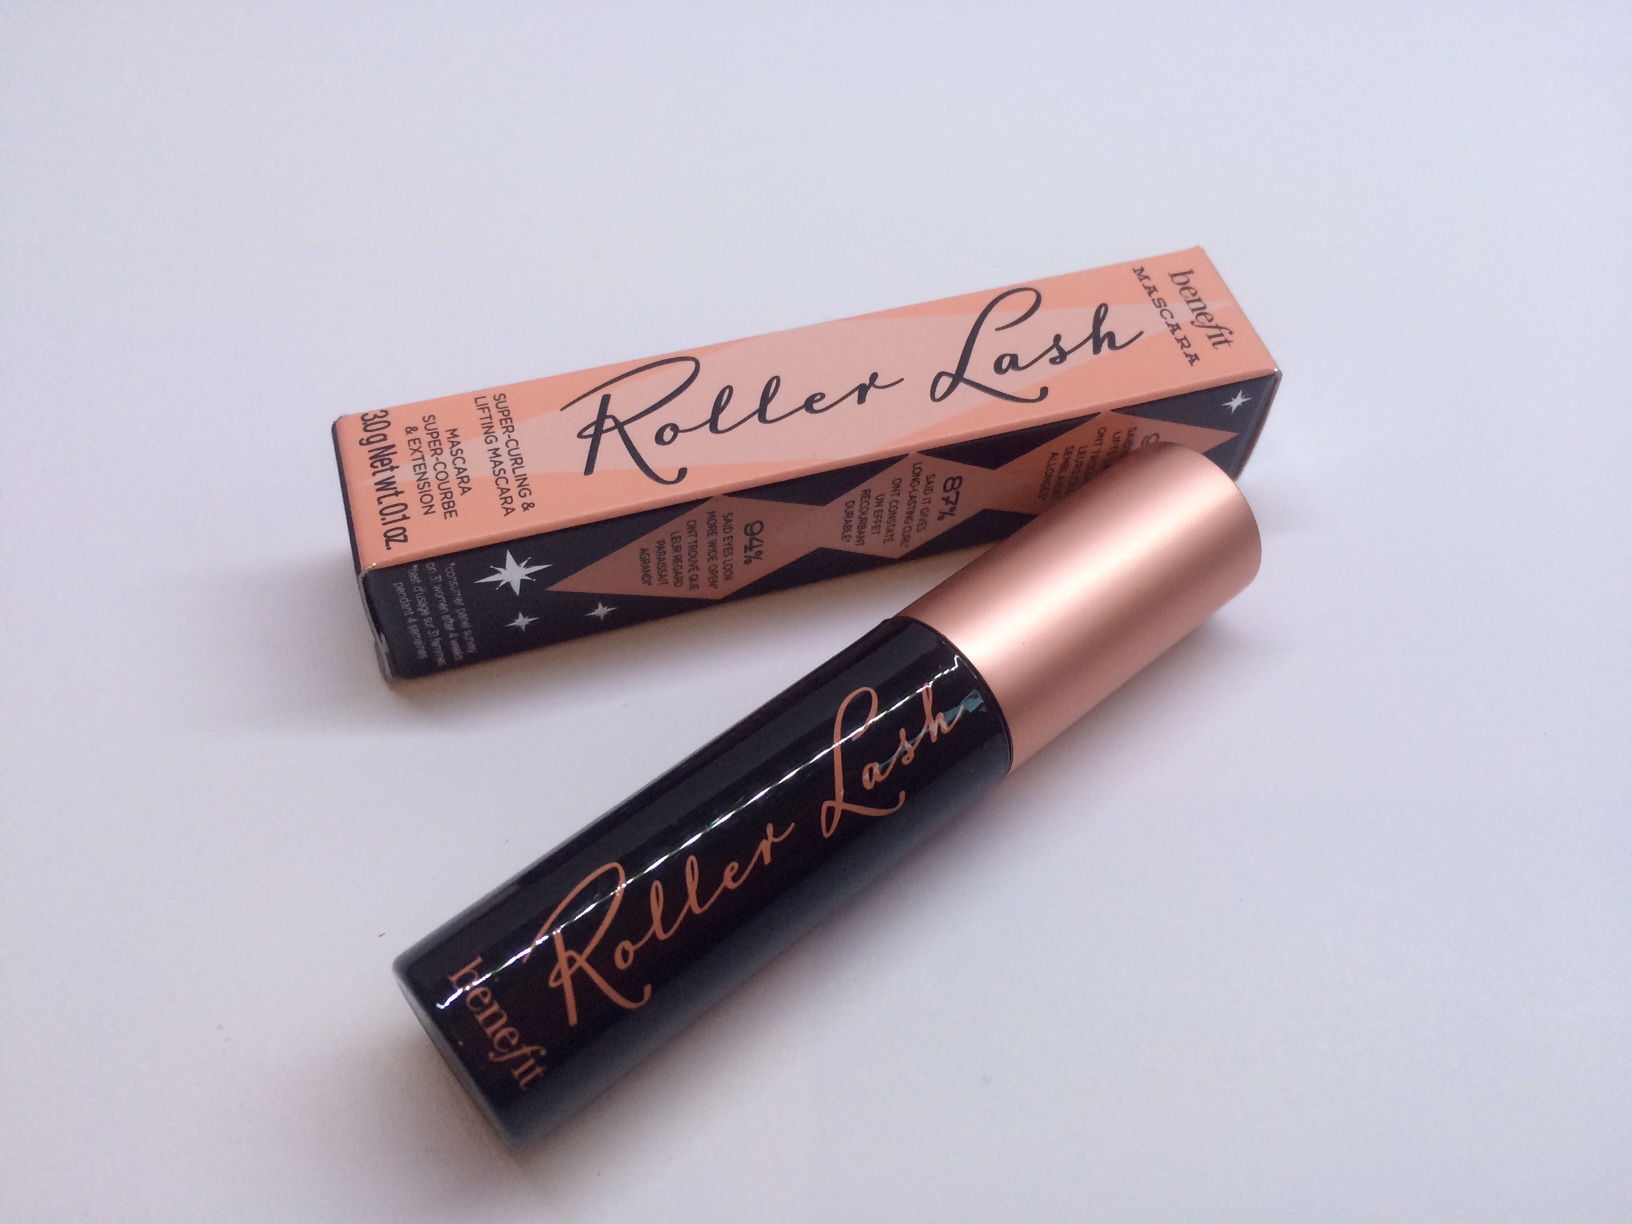 Preview: The Benefit Roller Lash Mascara